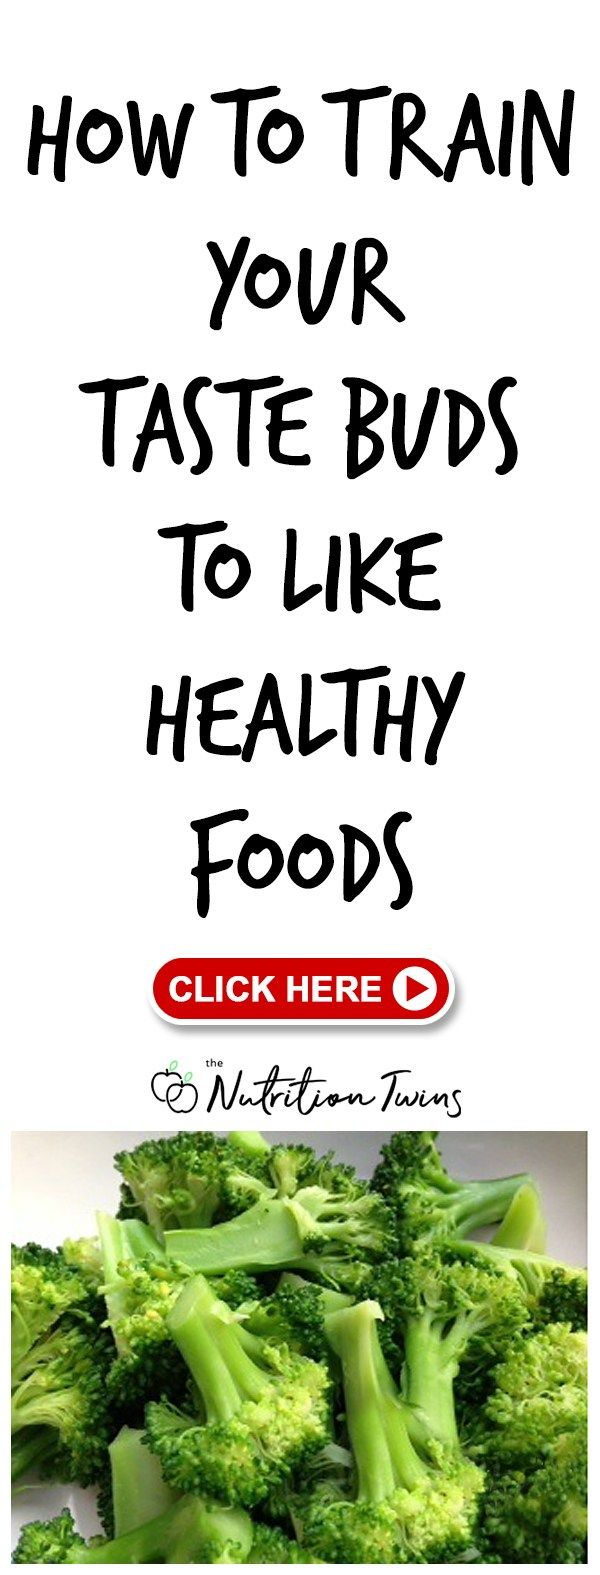 Train Your Taste Buds To Like Healthy Foods | Nutrition Twins